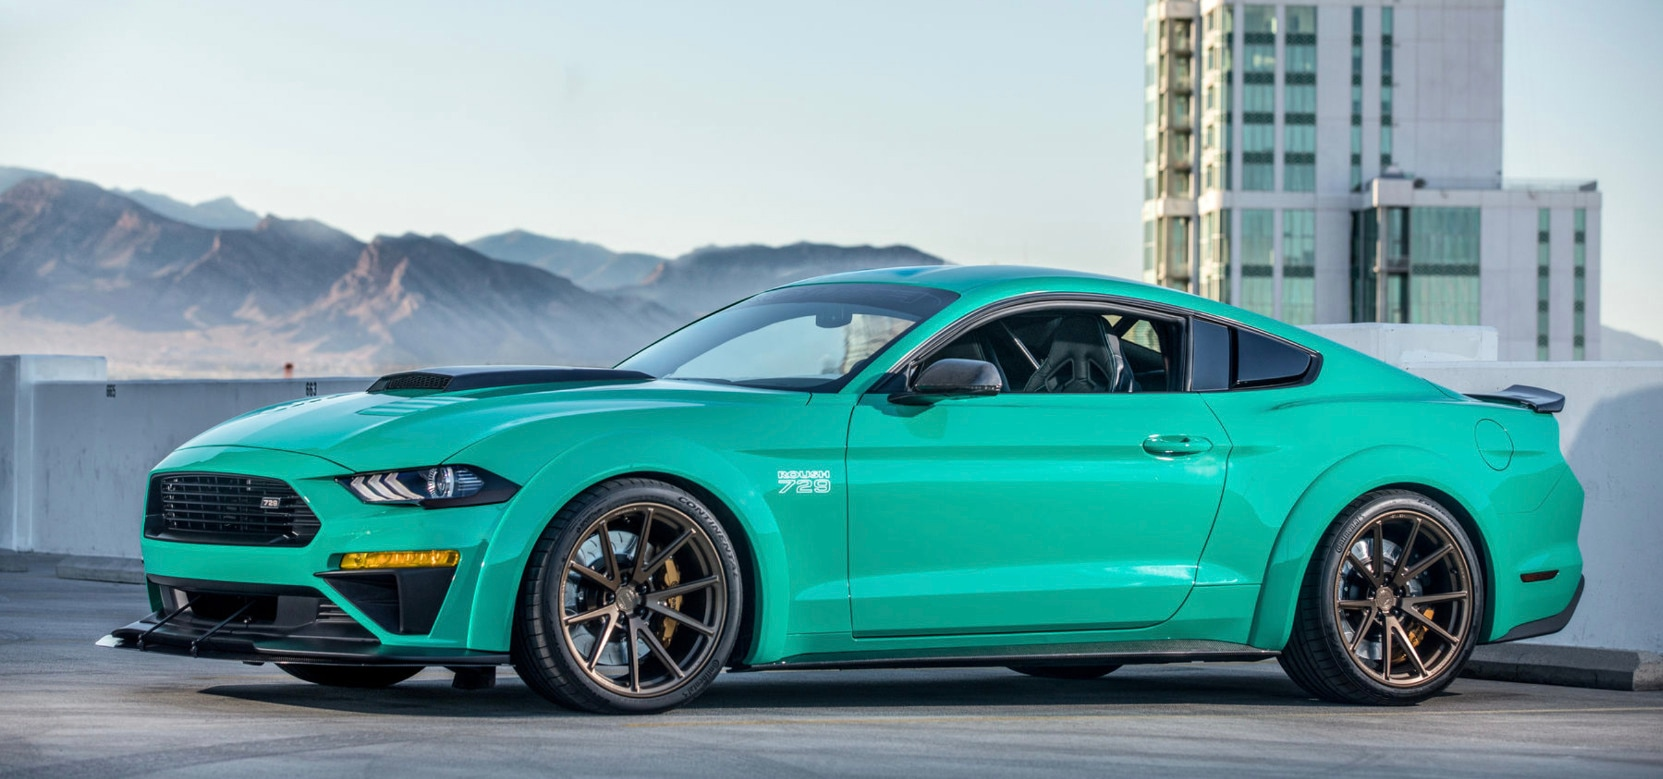 Roush stage 2 mustang get ready for the track with beechmont ford and roush